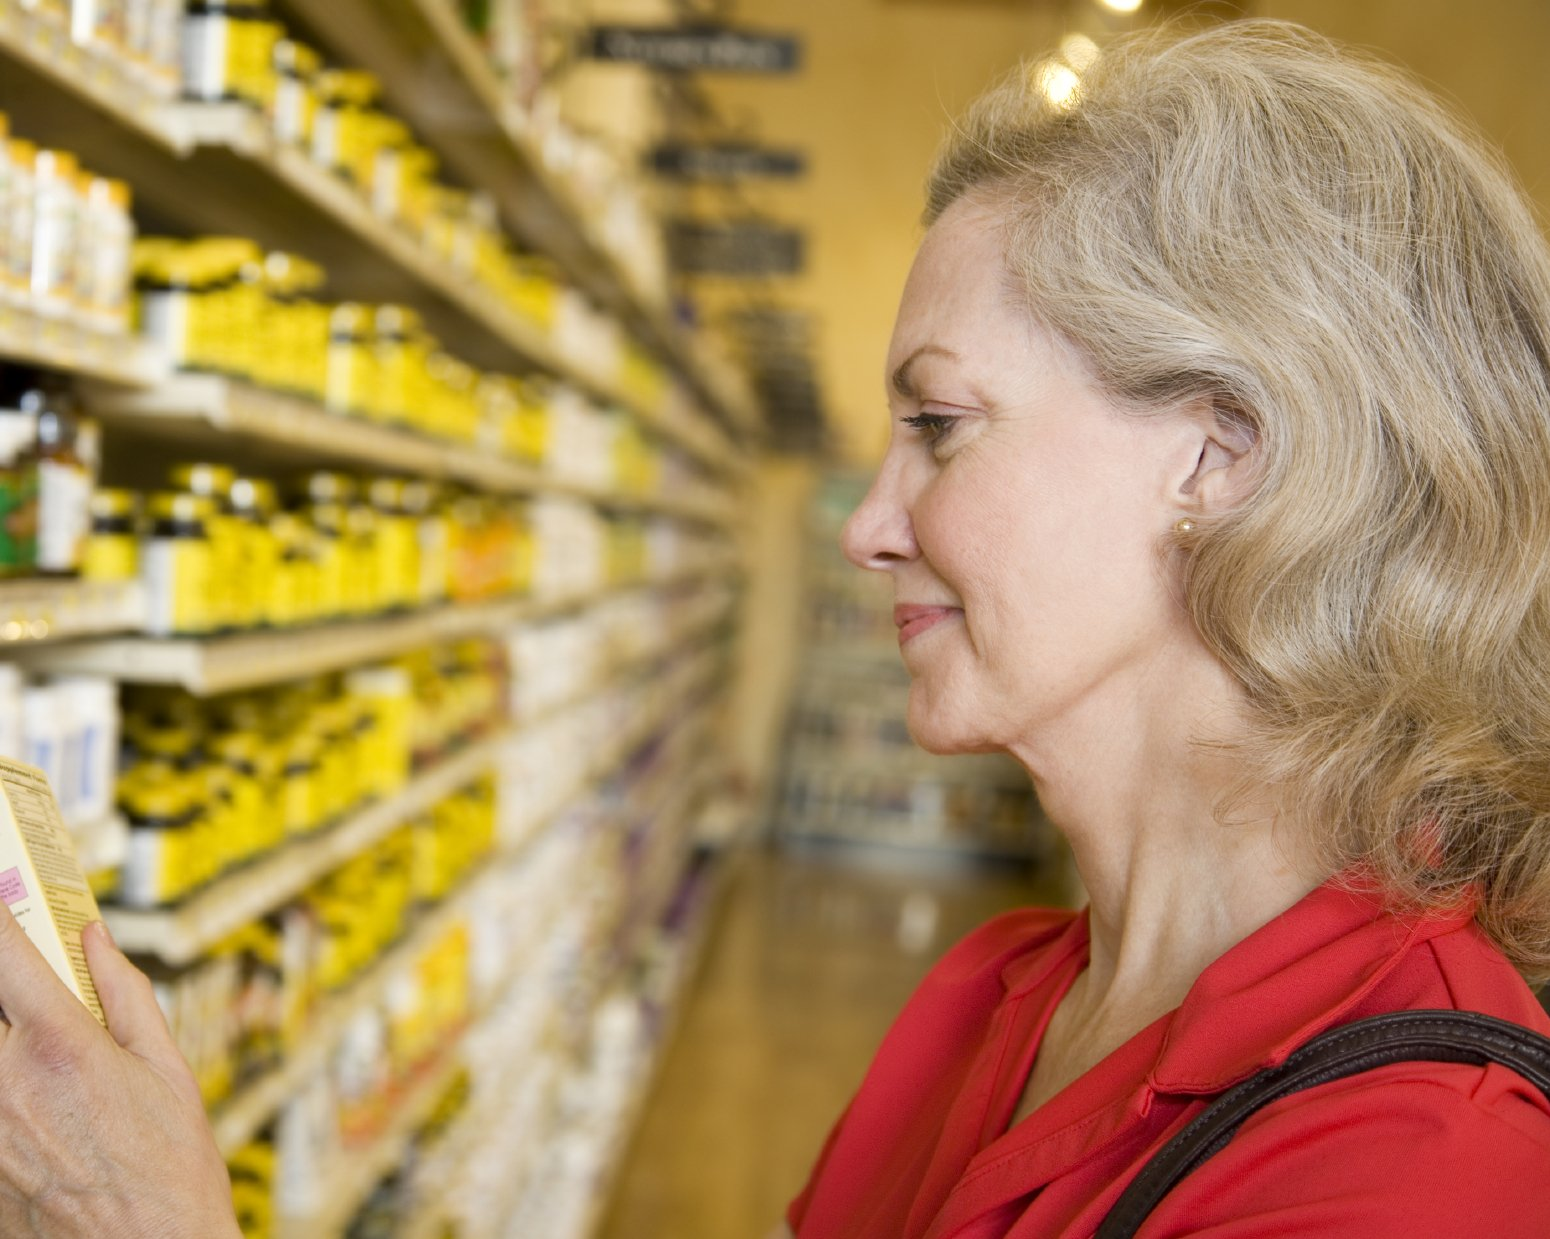 elderly woman looking at vitamins on the shelf